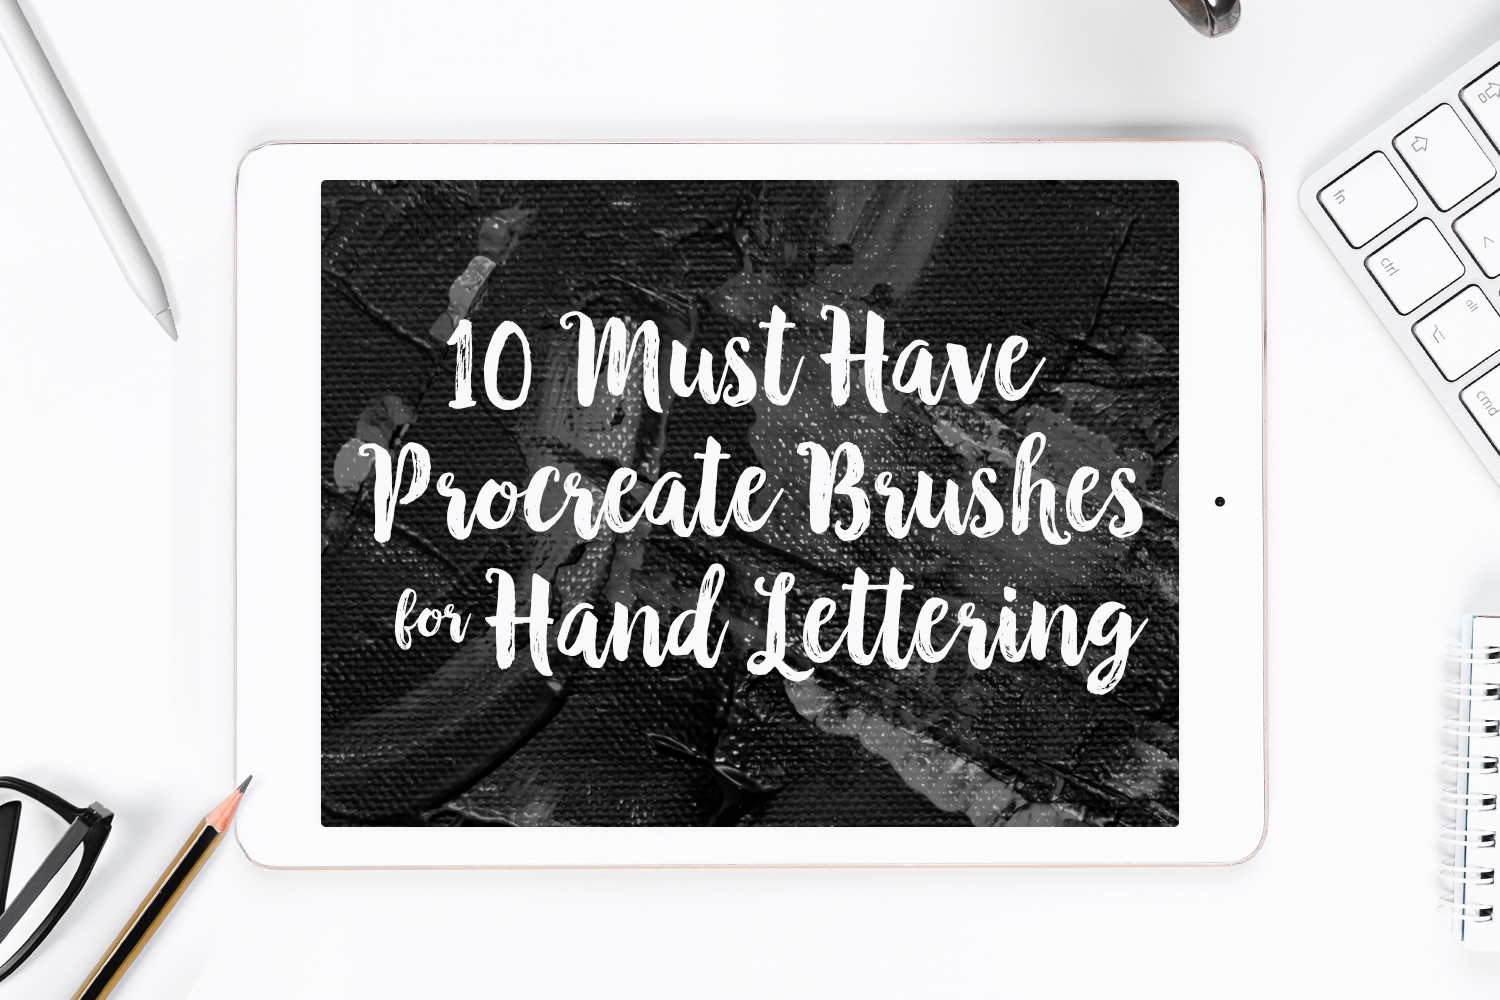 10 Must Have Procreate Brushes for Hand Lettering